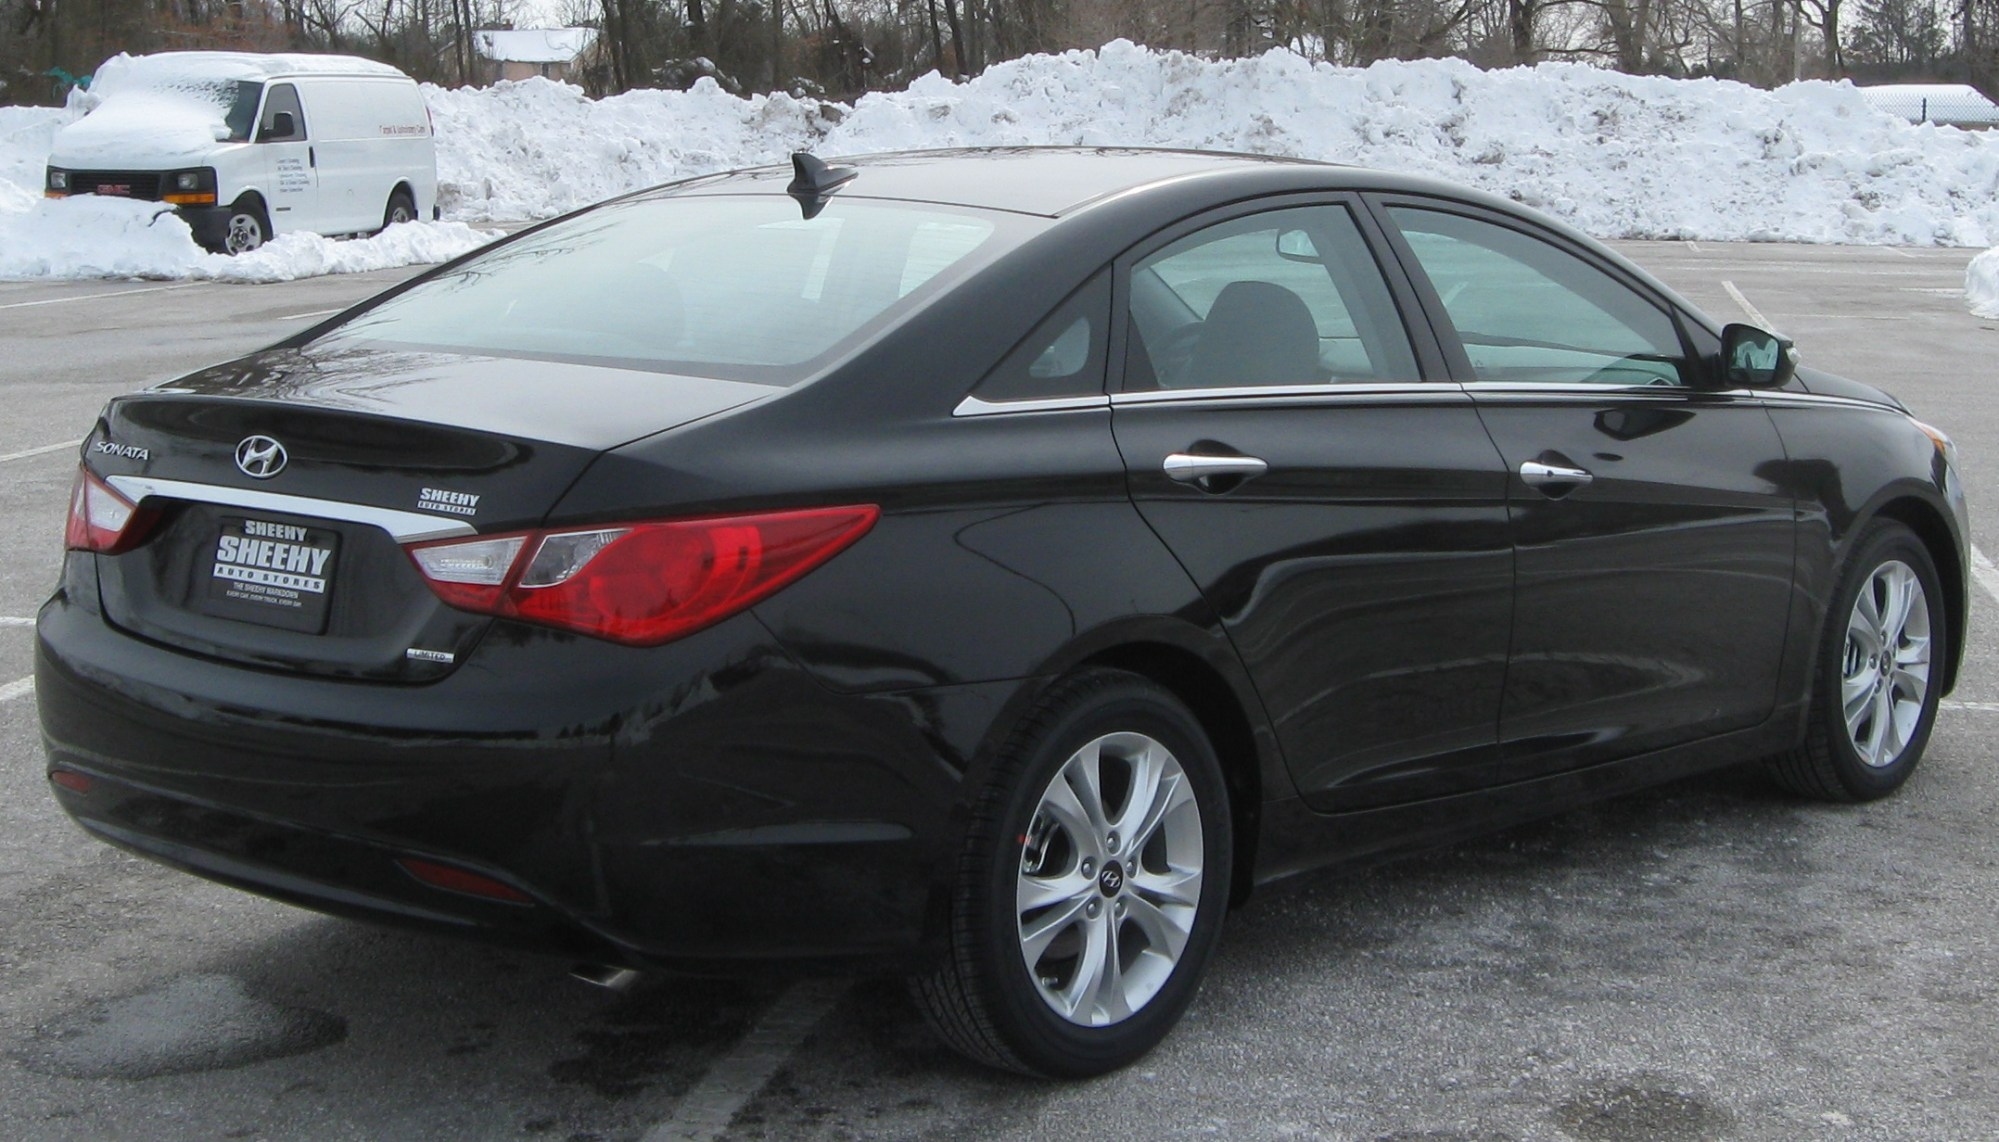 hight resolution of hyundai accent iv 2011 images 6